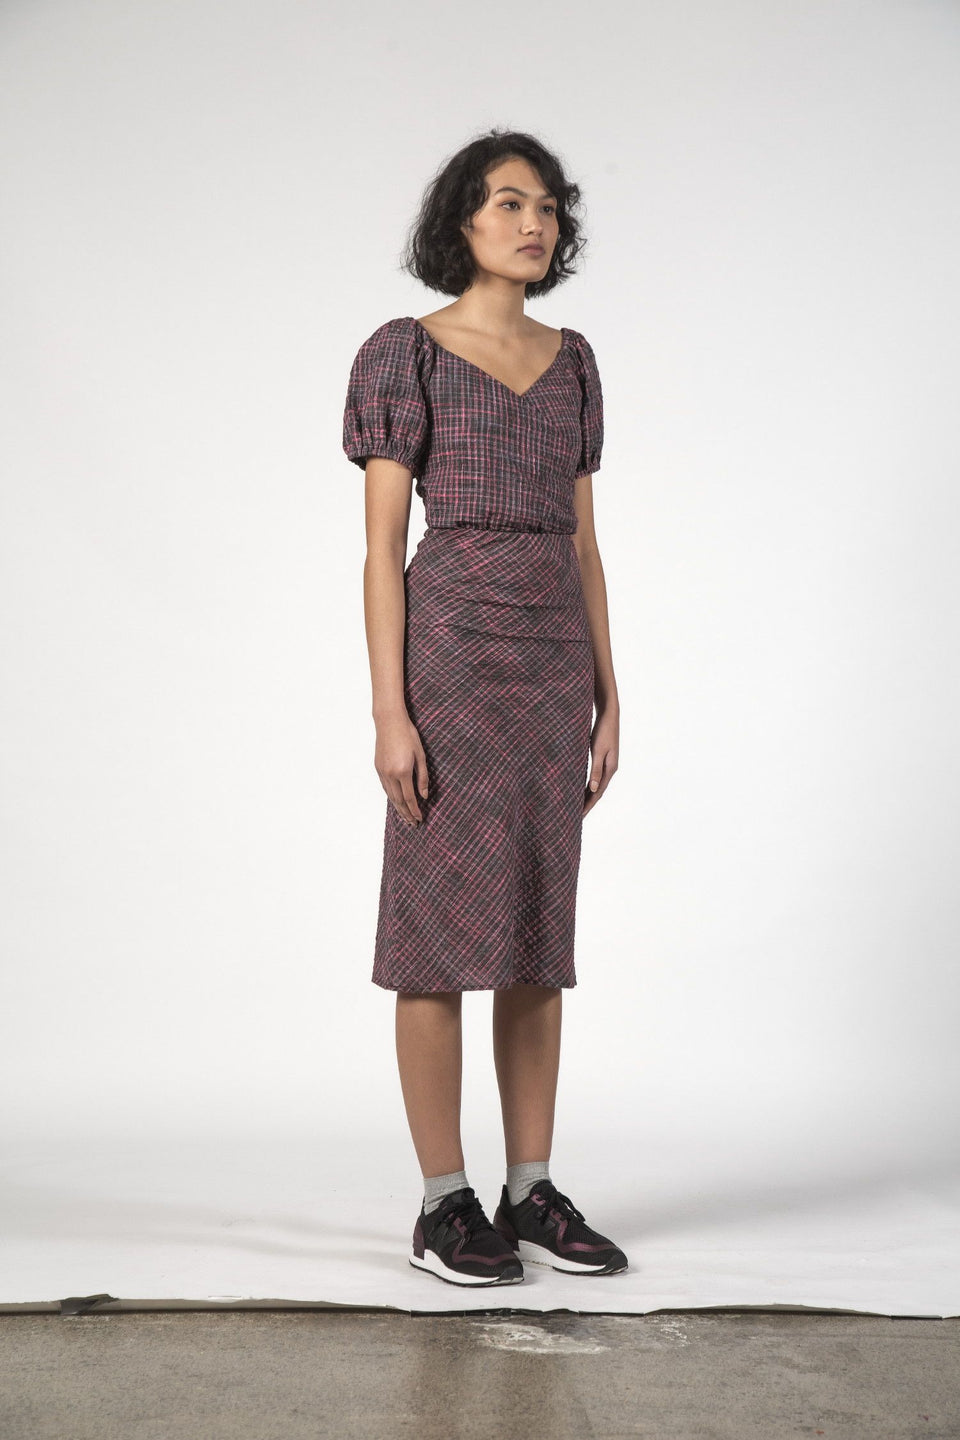 Thing Thing Lou Lou Skirt - Charcoal Check